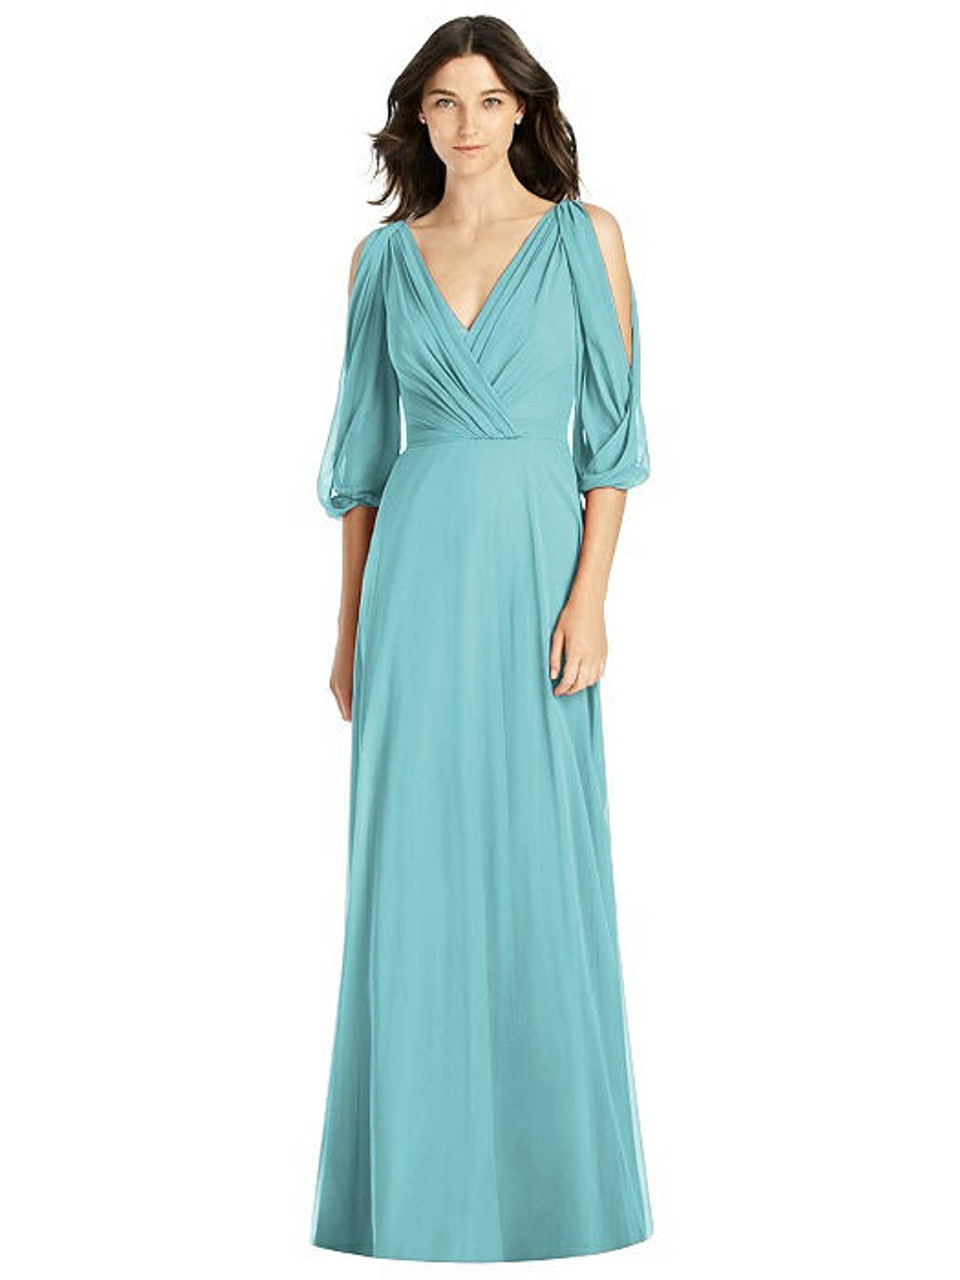 Jenny Packham Style JP1020 - Lux Chiffon - Bell sleeve and draped v-neckline and v-back